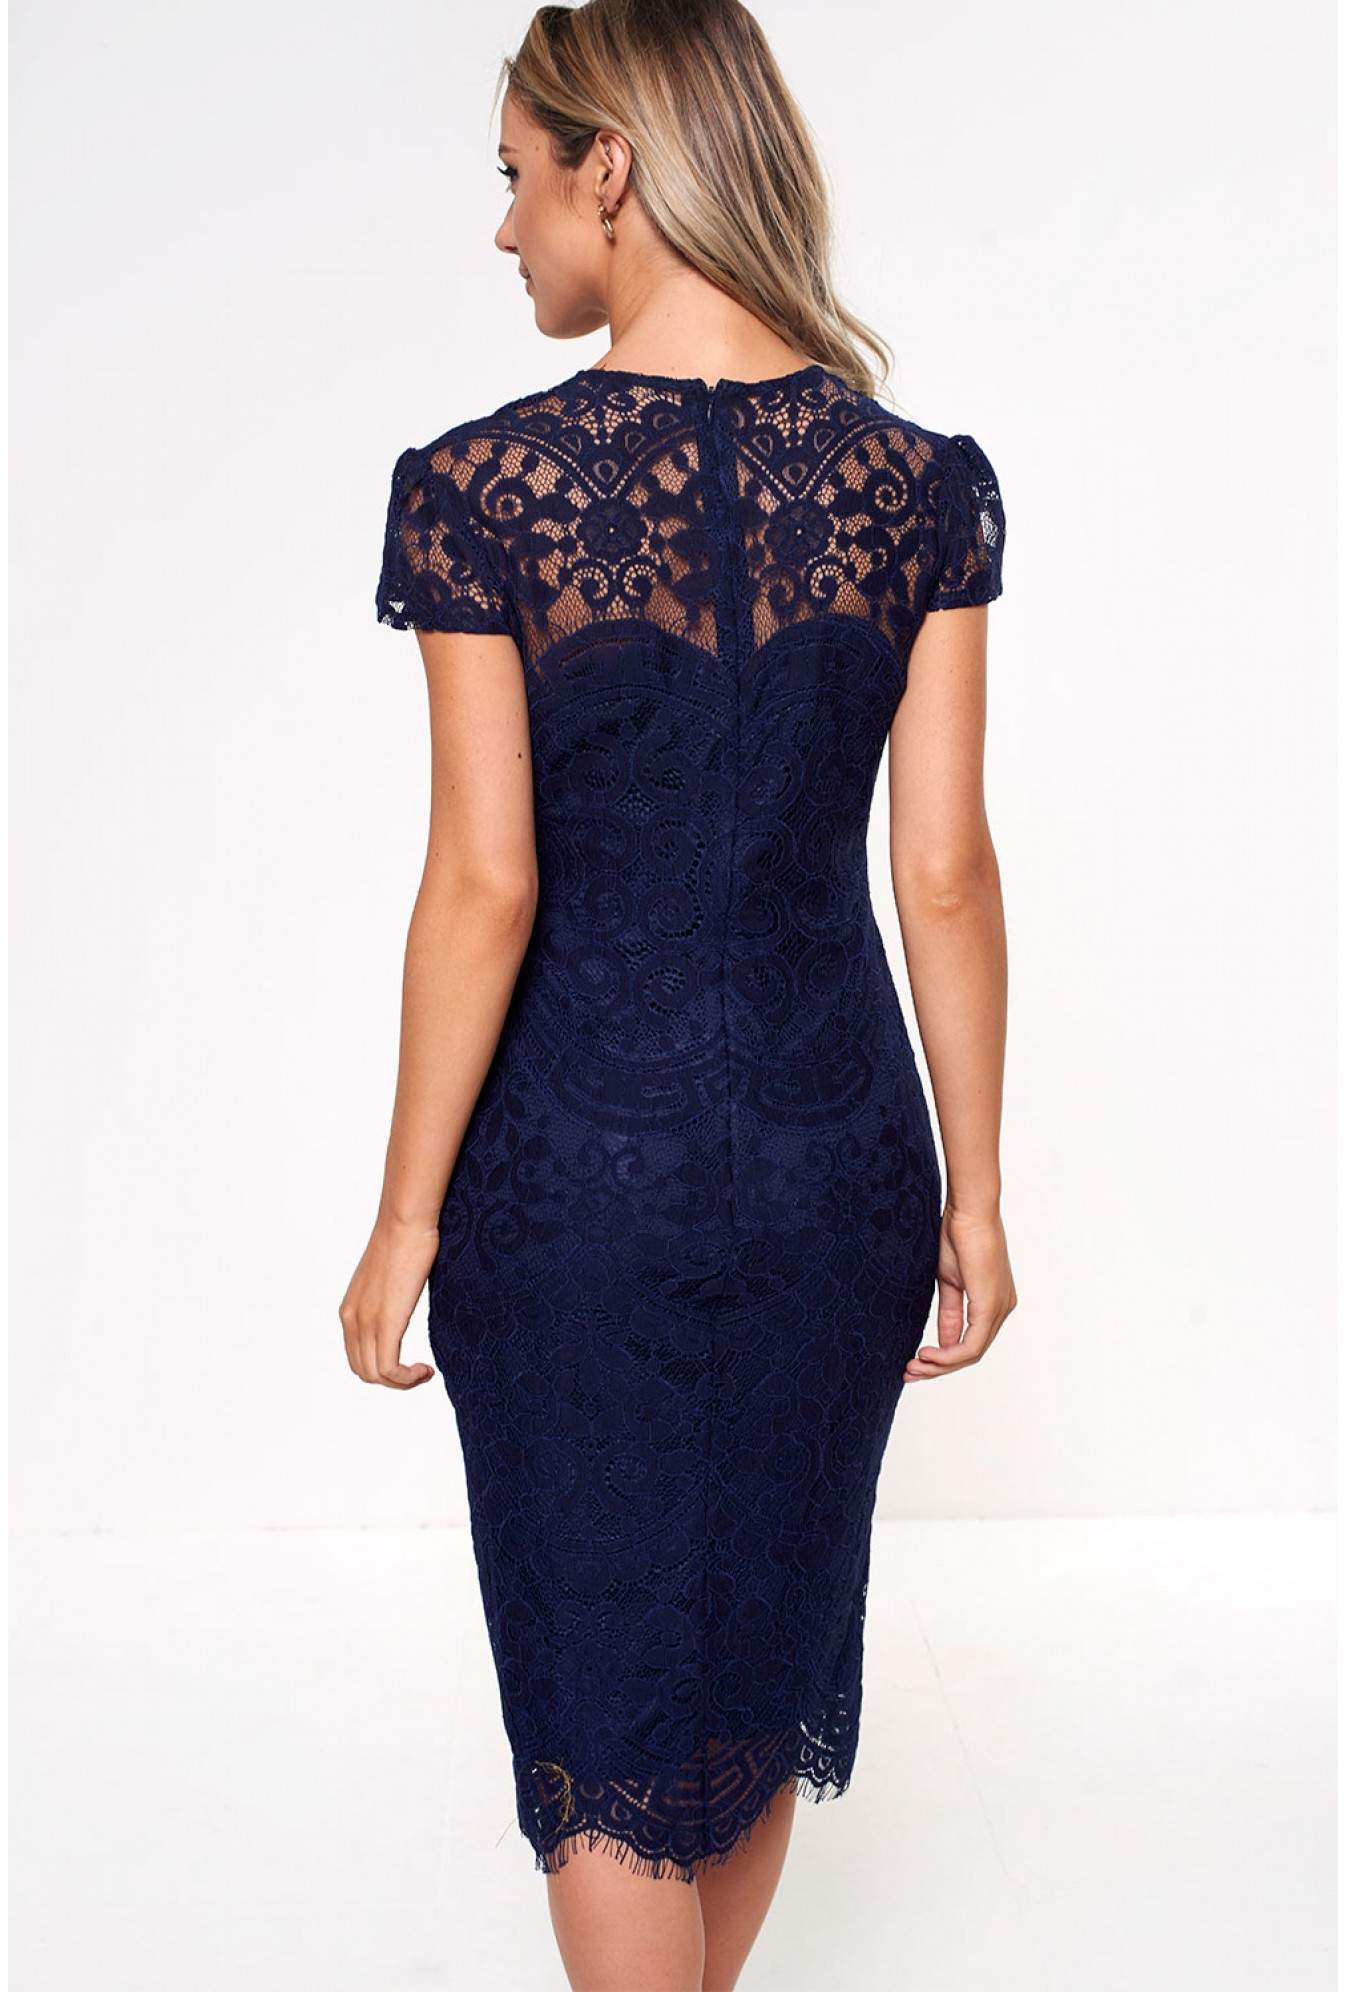 8235e3be40bc4 More Views. Gene Lace Occasion Dress in Navy. city goddess